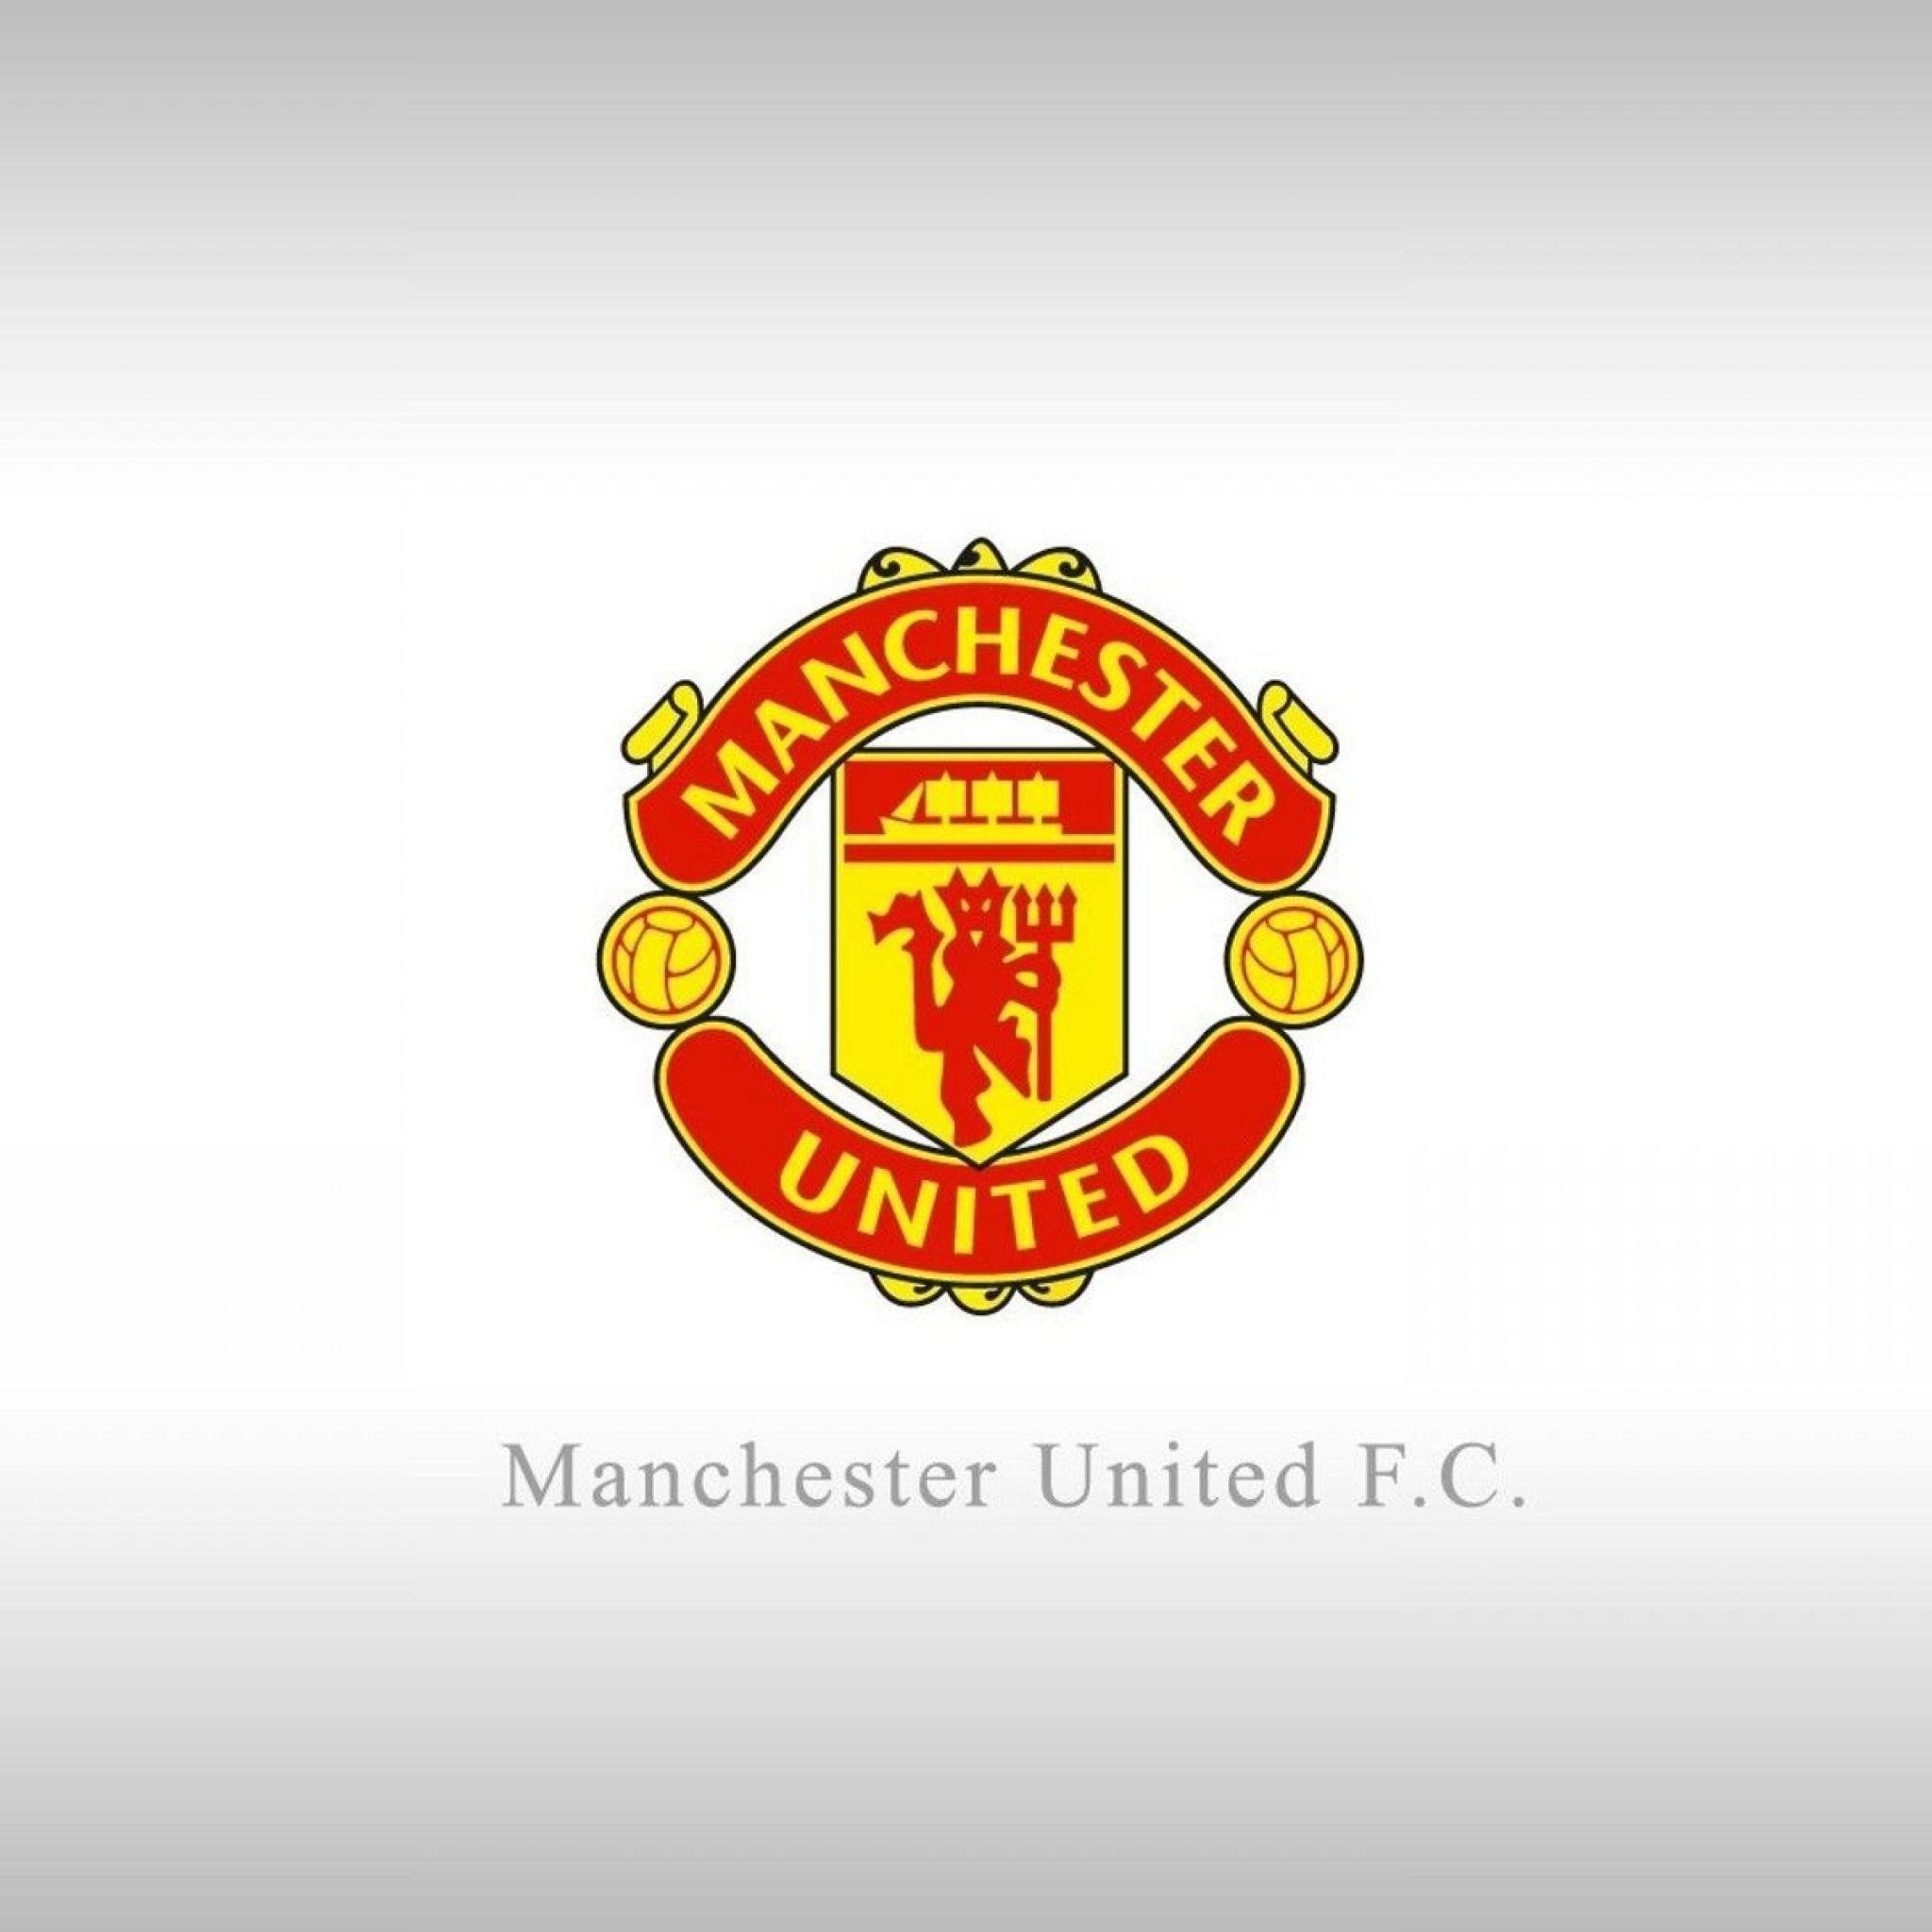 Download Dp Bbm Manchester United Bergerak Update Status